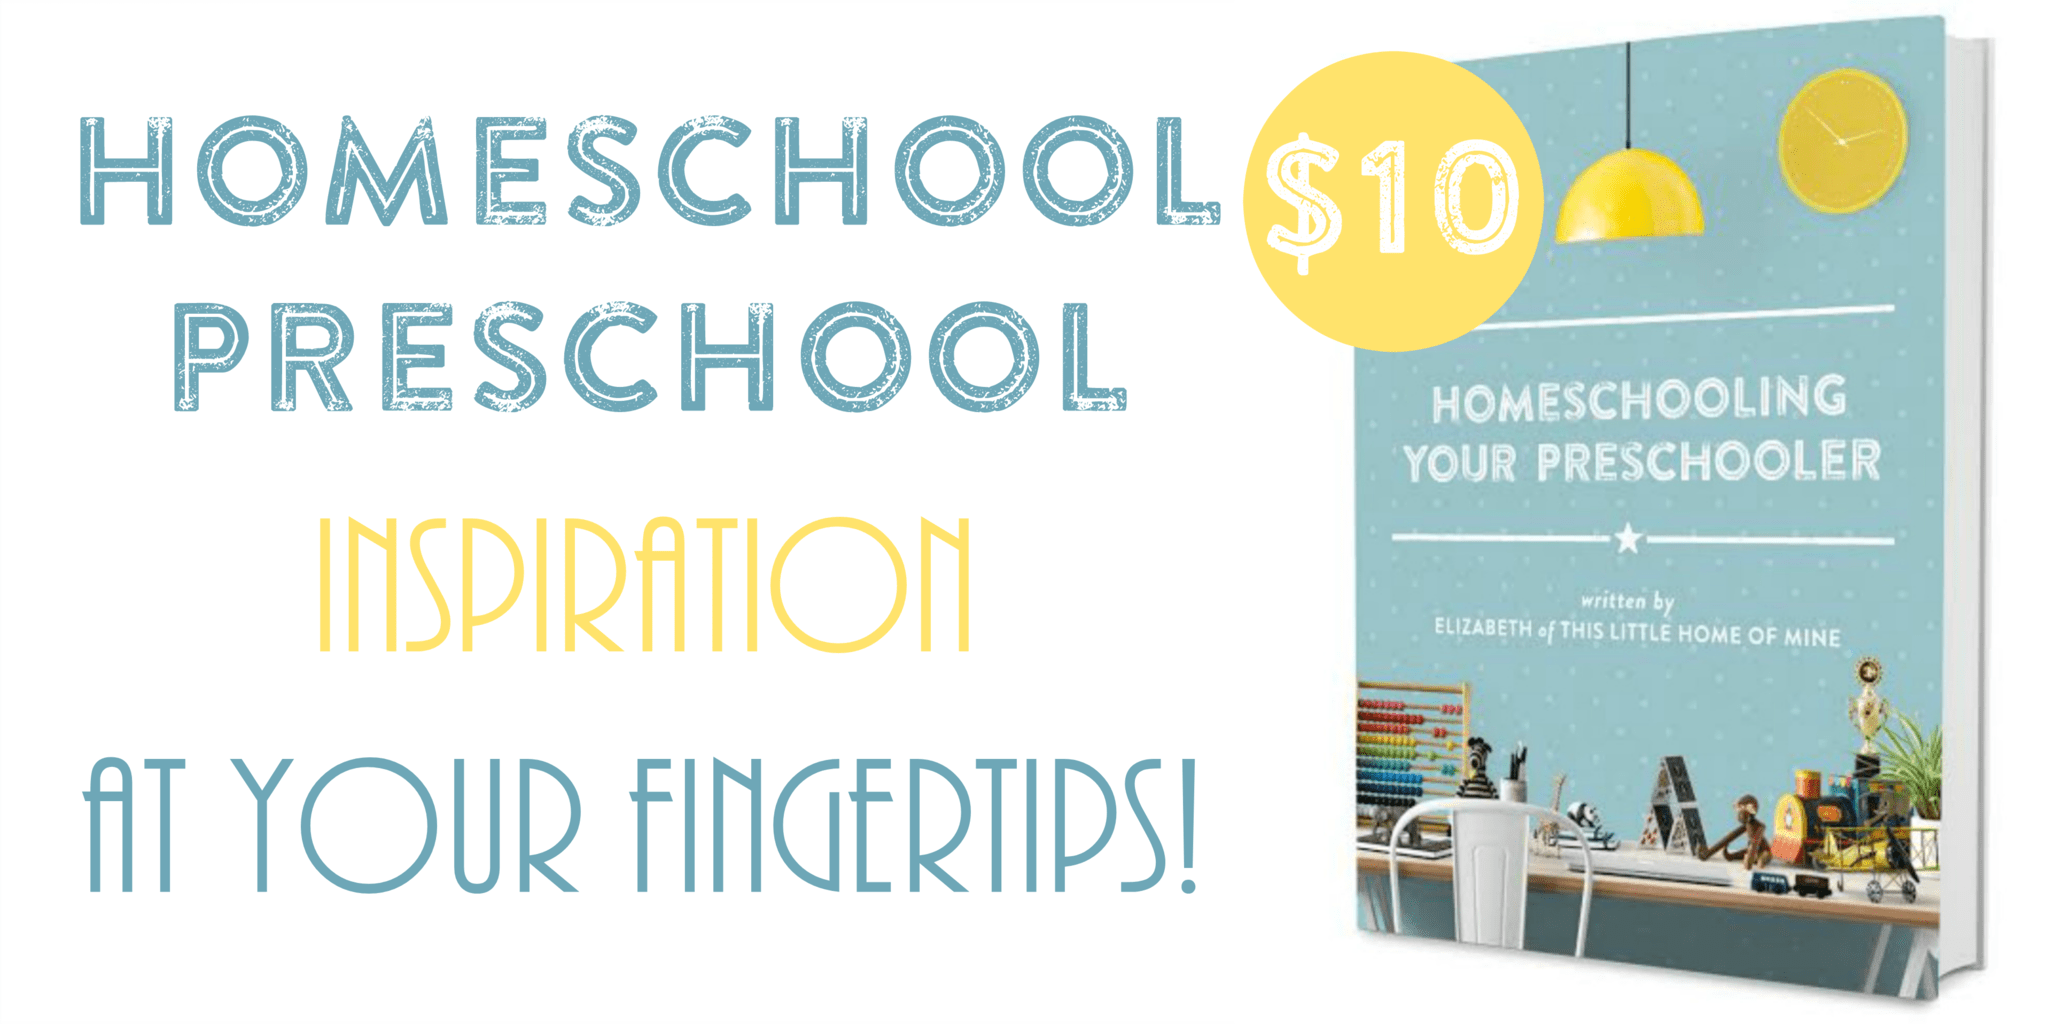 Homeschooling Your Preschooler by This Little Home of Mine